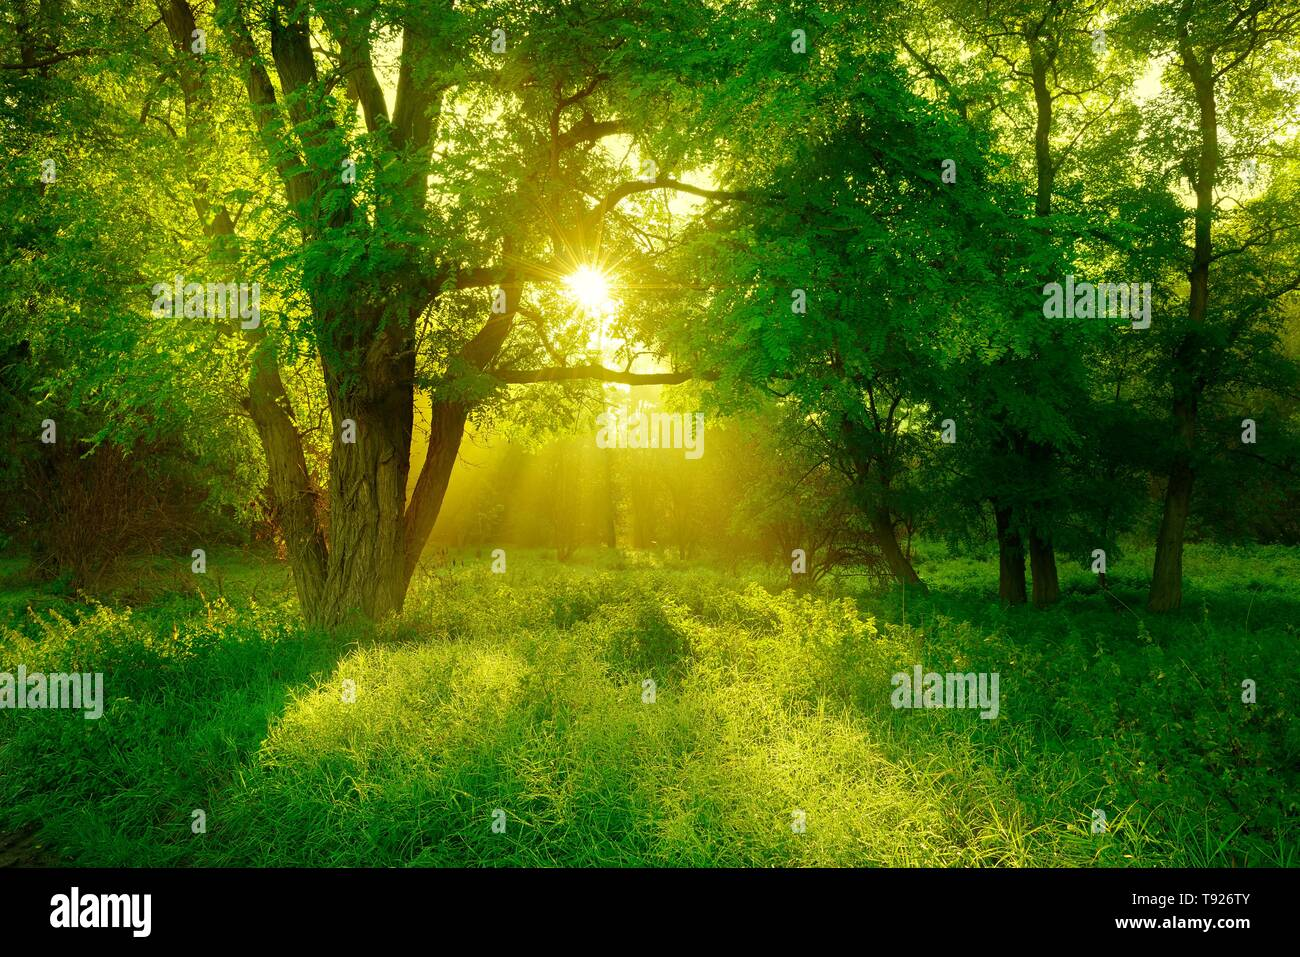 Morning atmosphere in the forest, sun shines through trees, Black locust (Robinia pseudoacacia) on clearing, Lower Saale Valley Nature Park - Stock Image